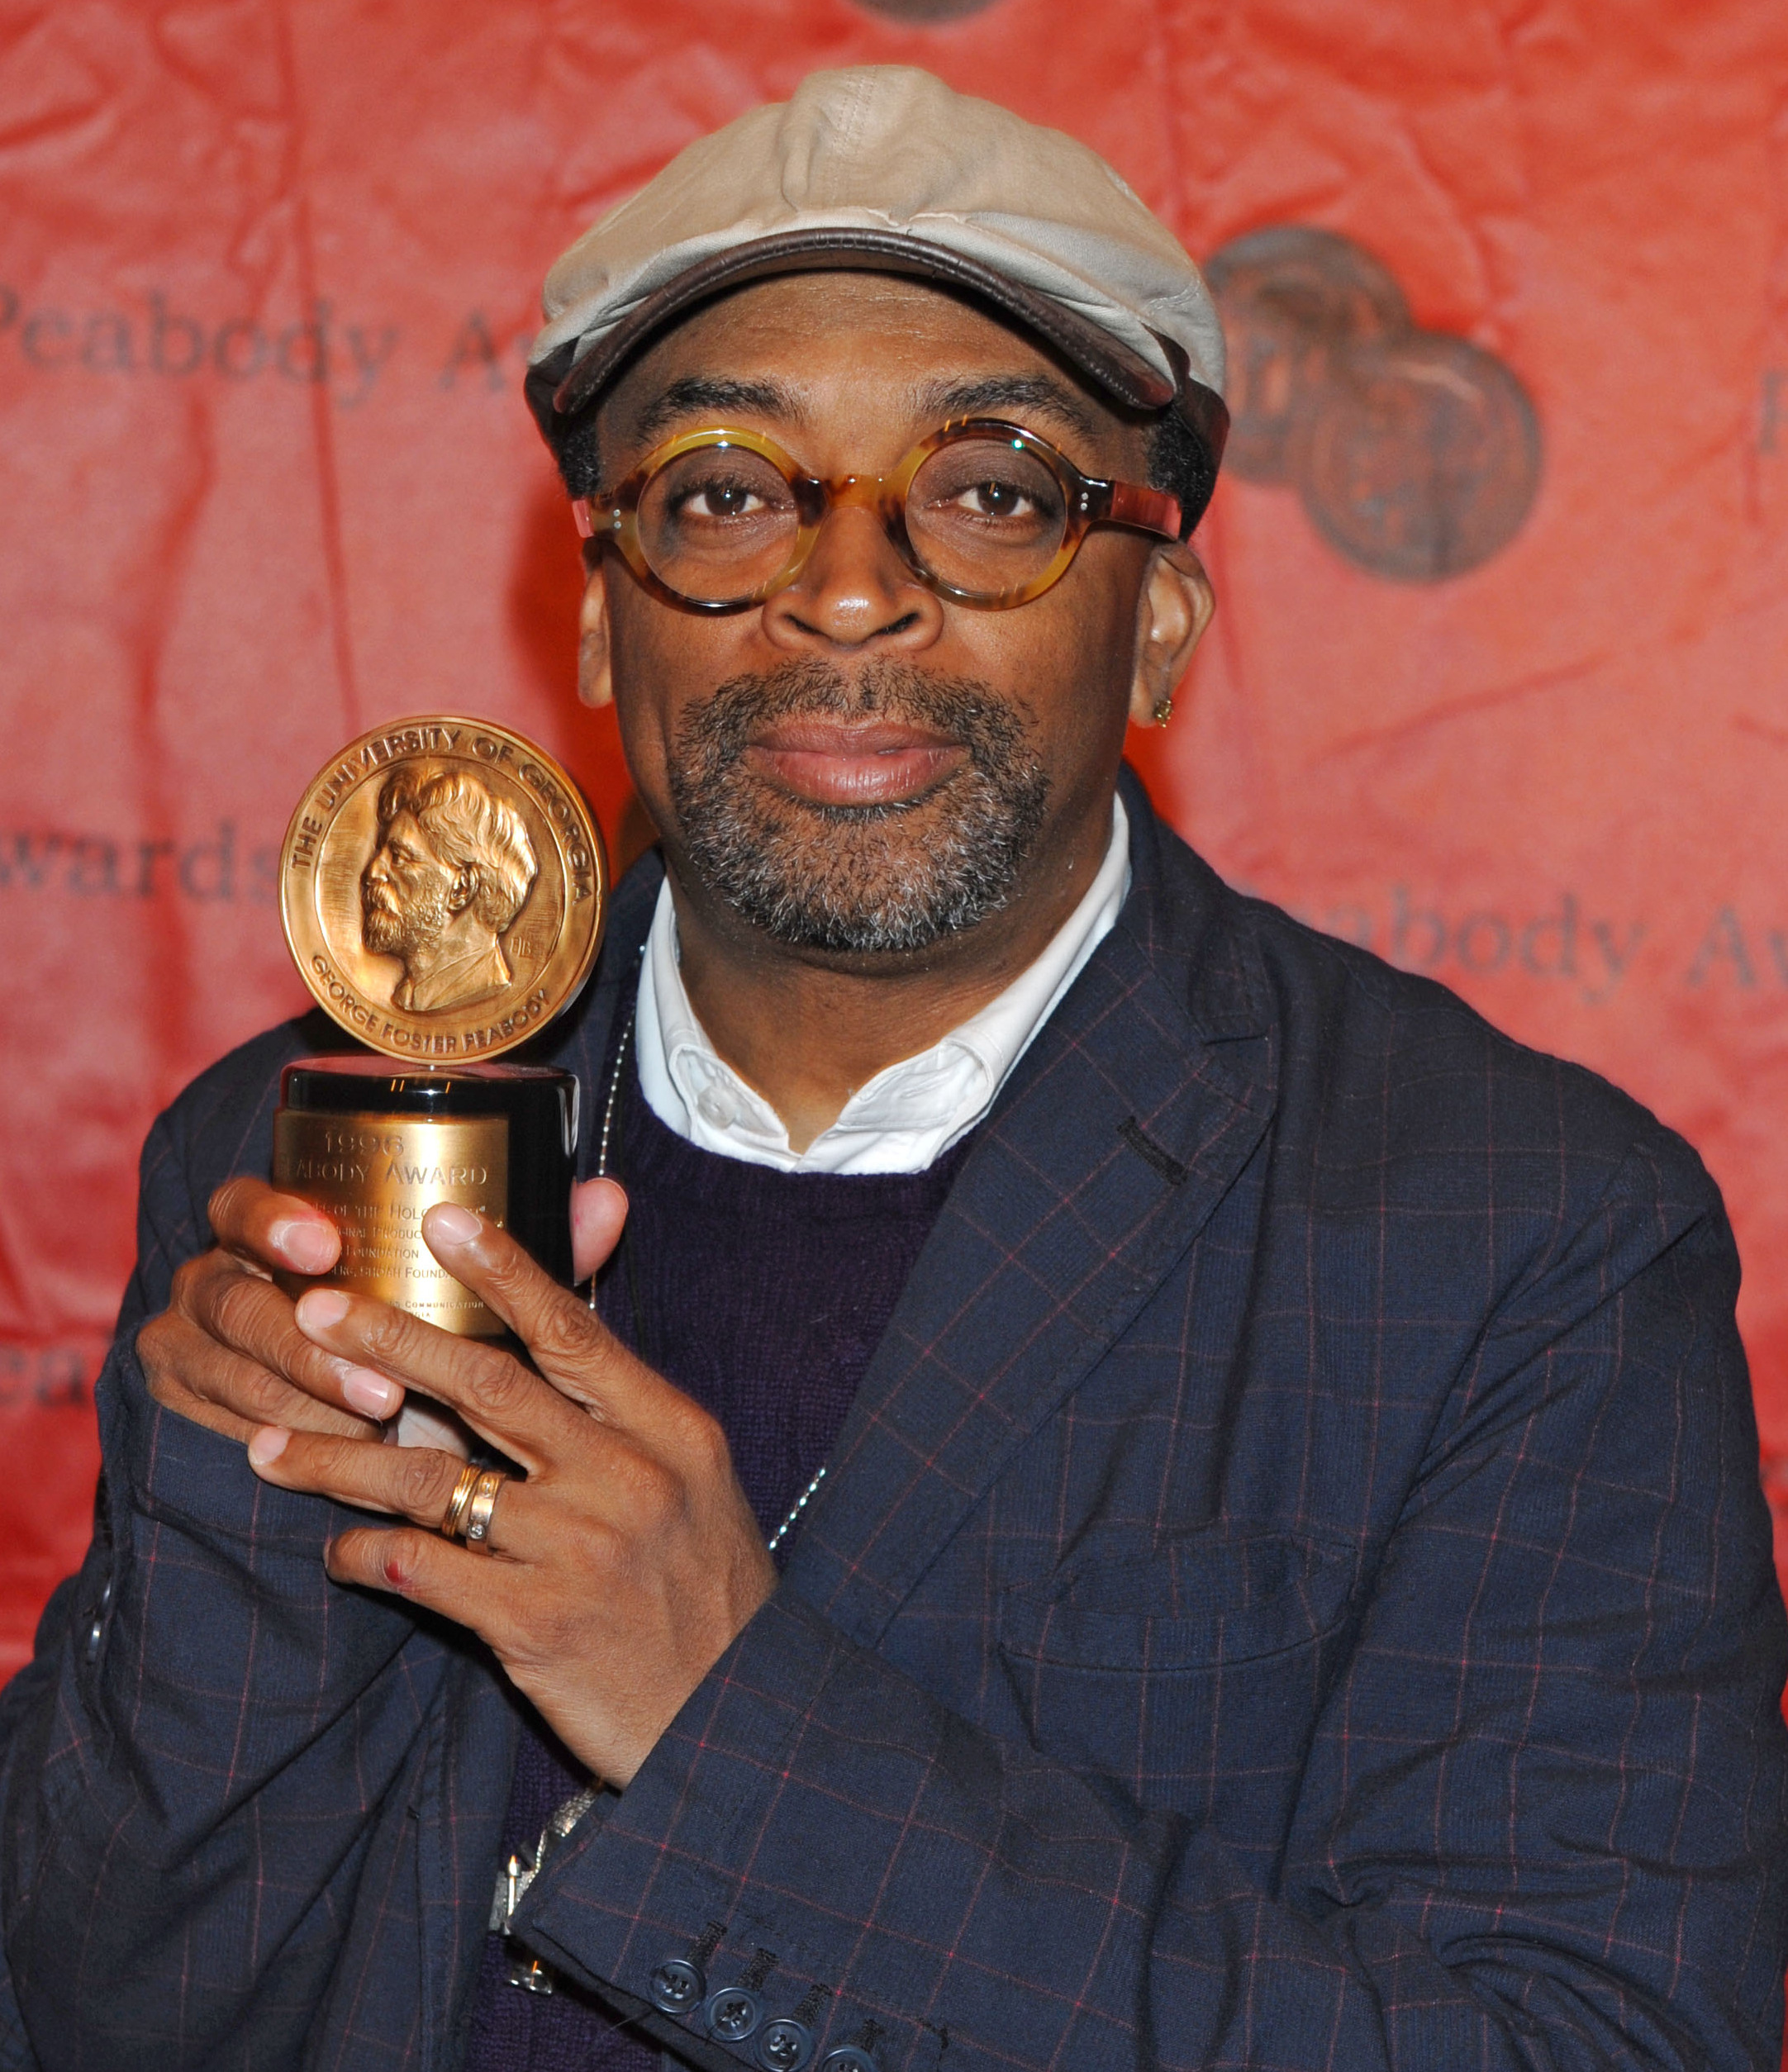 Spike Lee - Wikipedia, the free encyclopedia